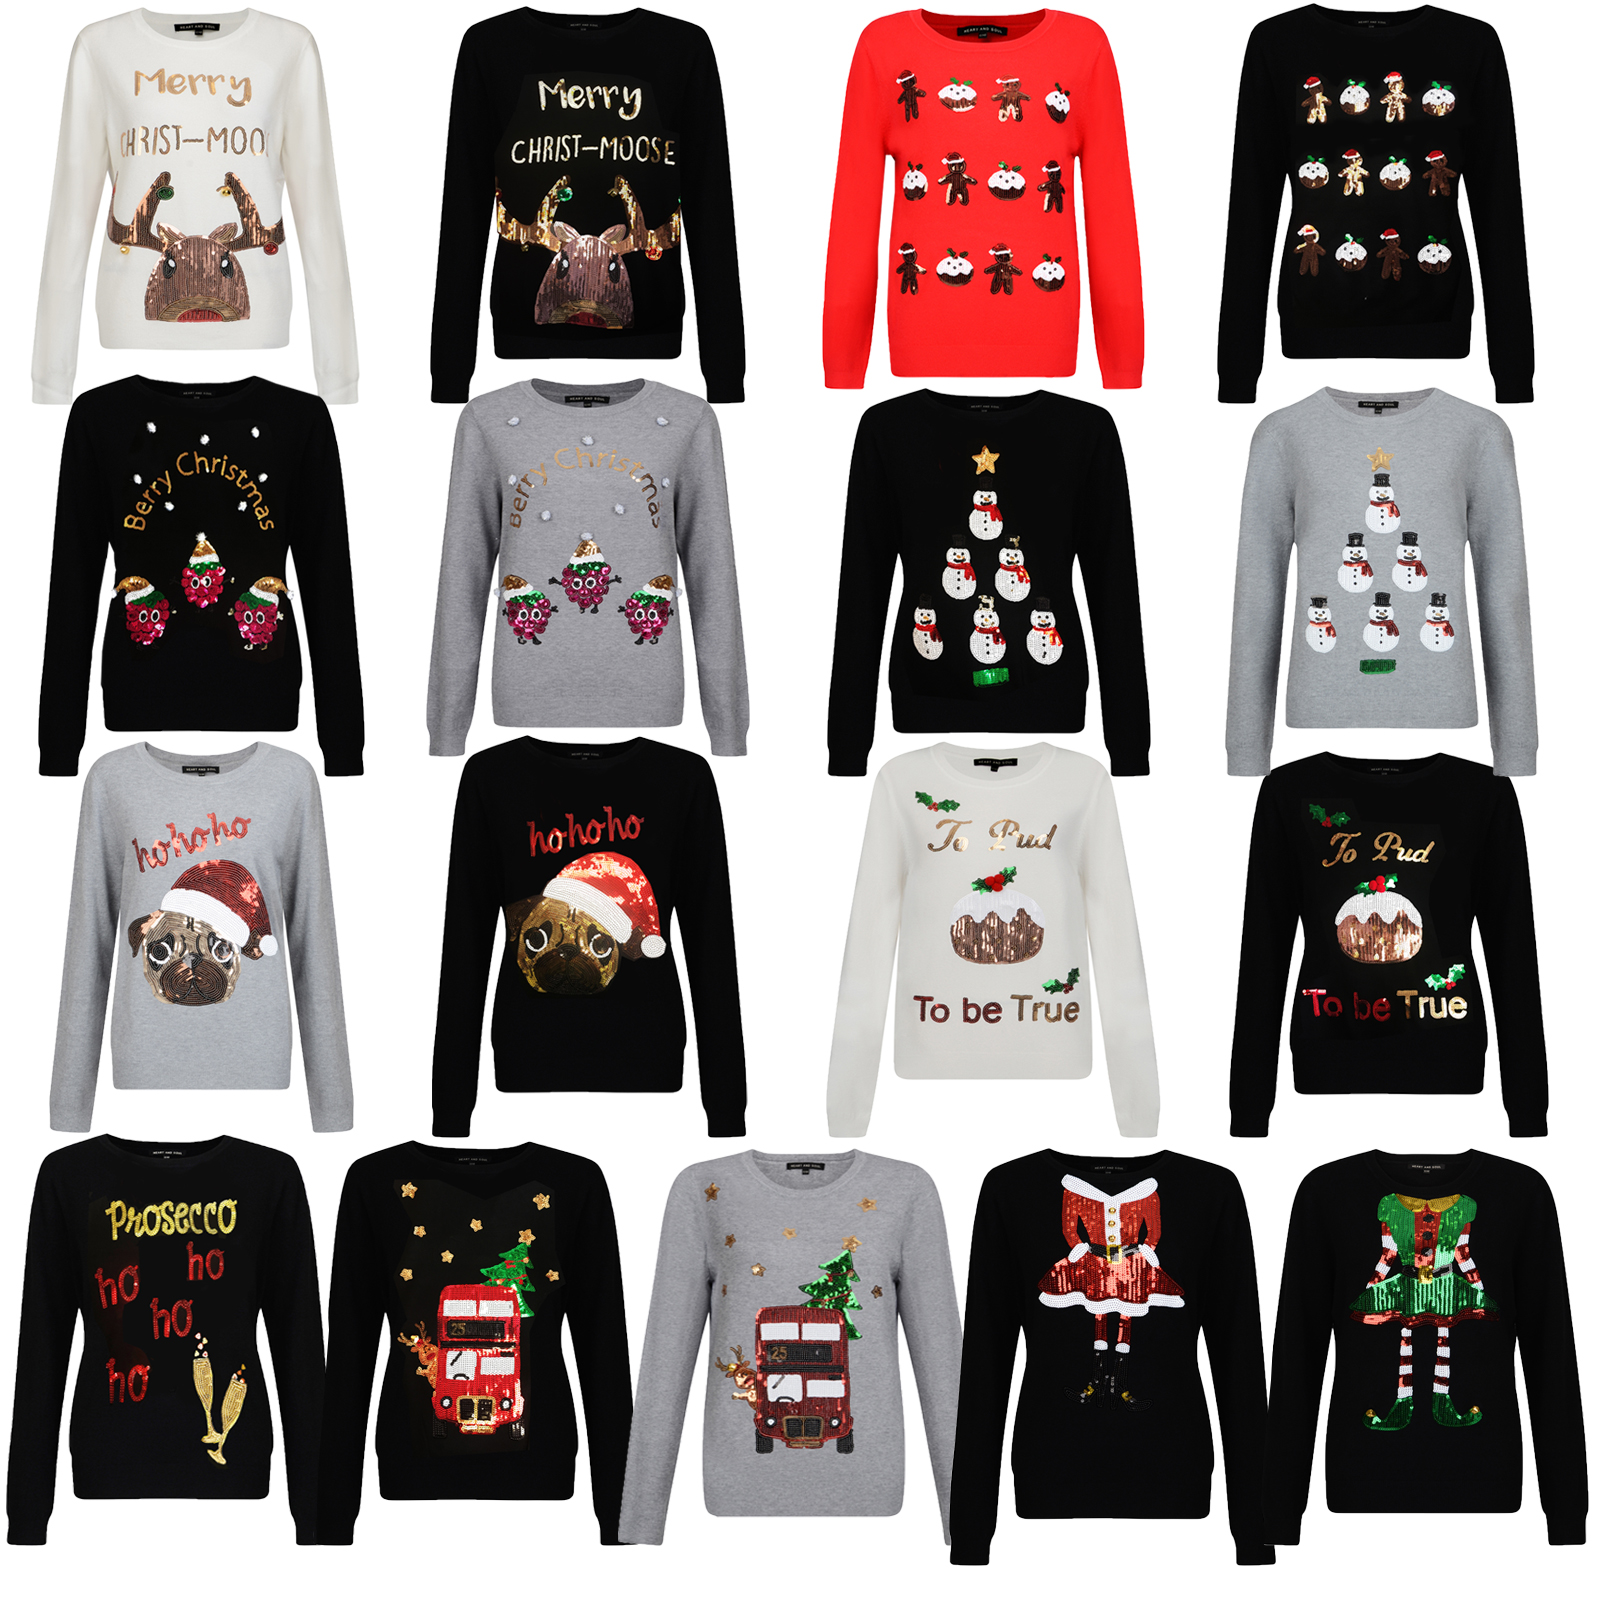 discount up to 60% stable quality how to choose Details about Heart & Soul Womens Sequin Novelty Christmas Jumpers Designer  Knitted Sweater